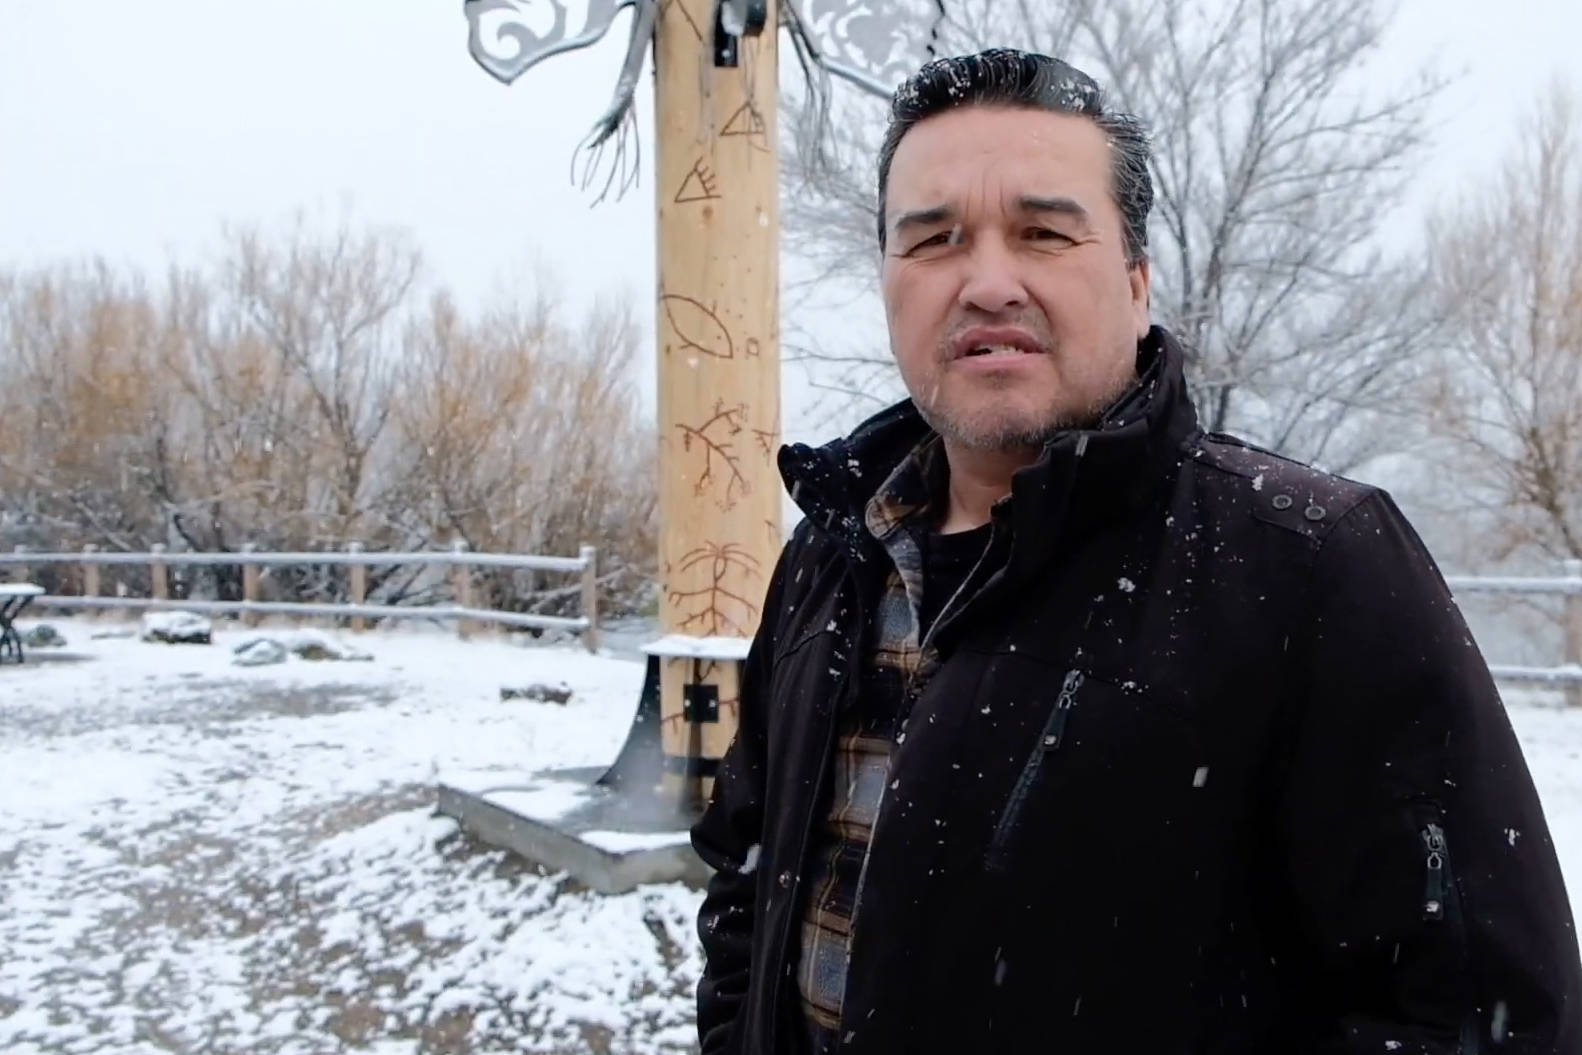 Clint George collaborated with Les Louis to create the Pelmewash Parkway Indigenous sculptures in Lake Country. (Video still)